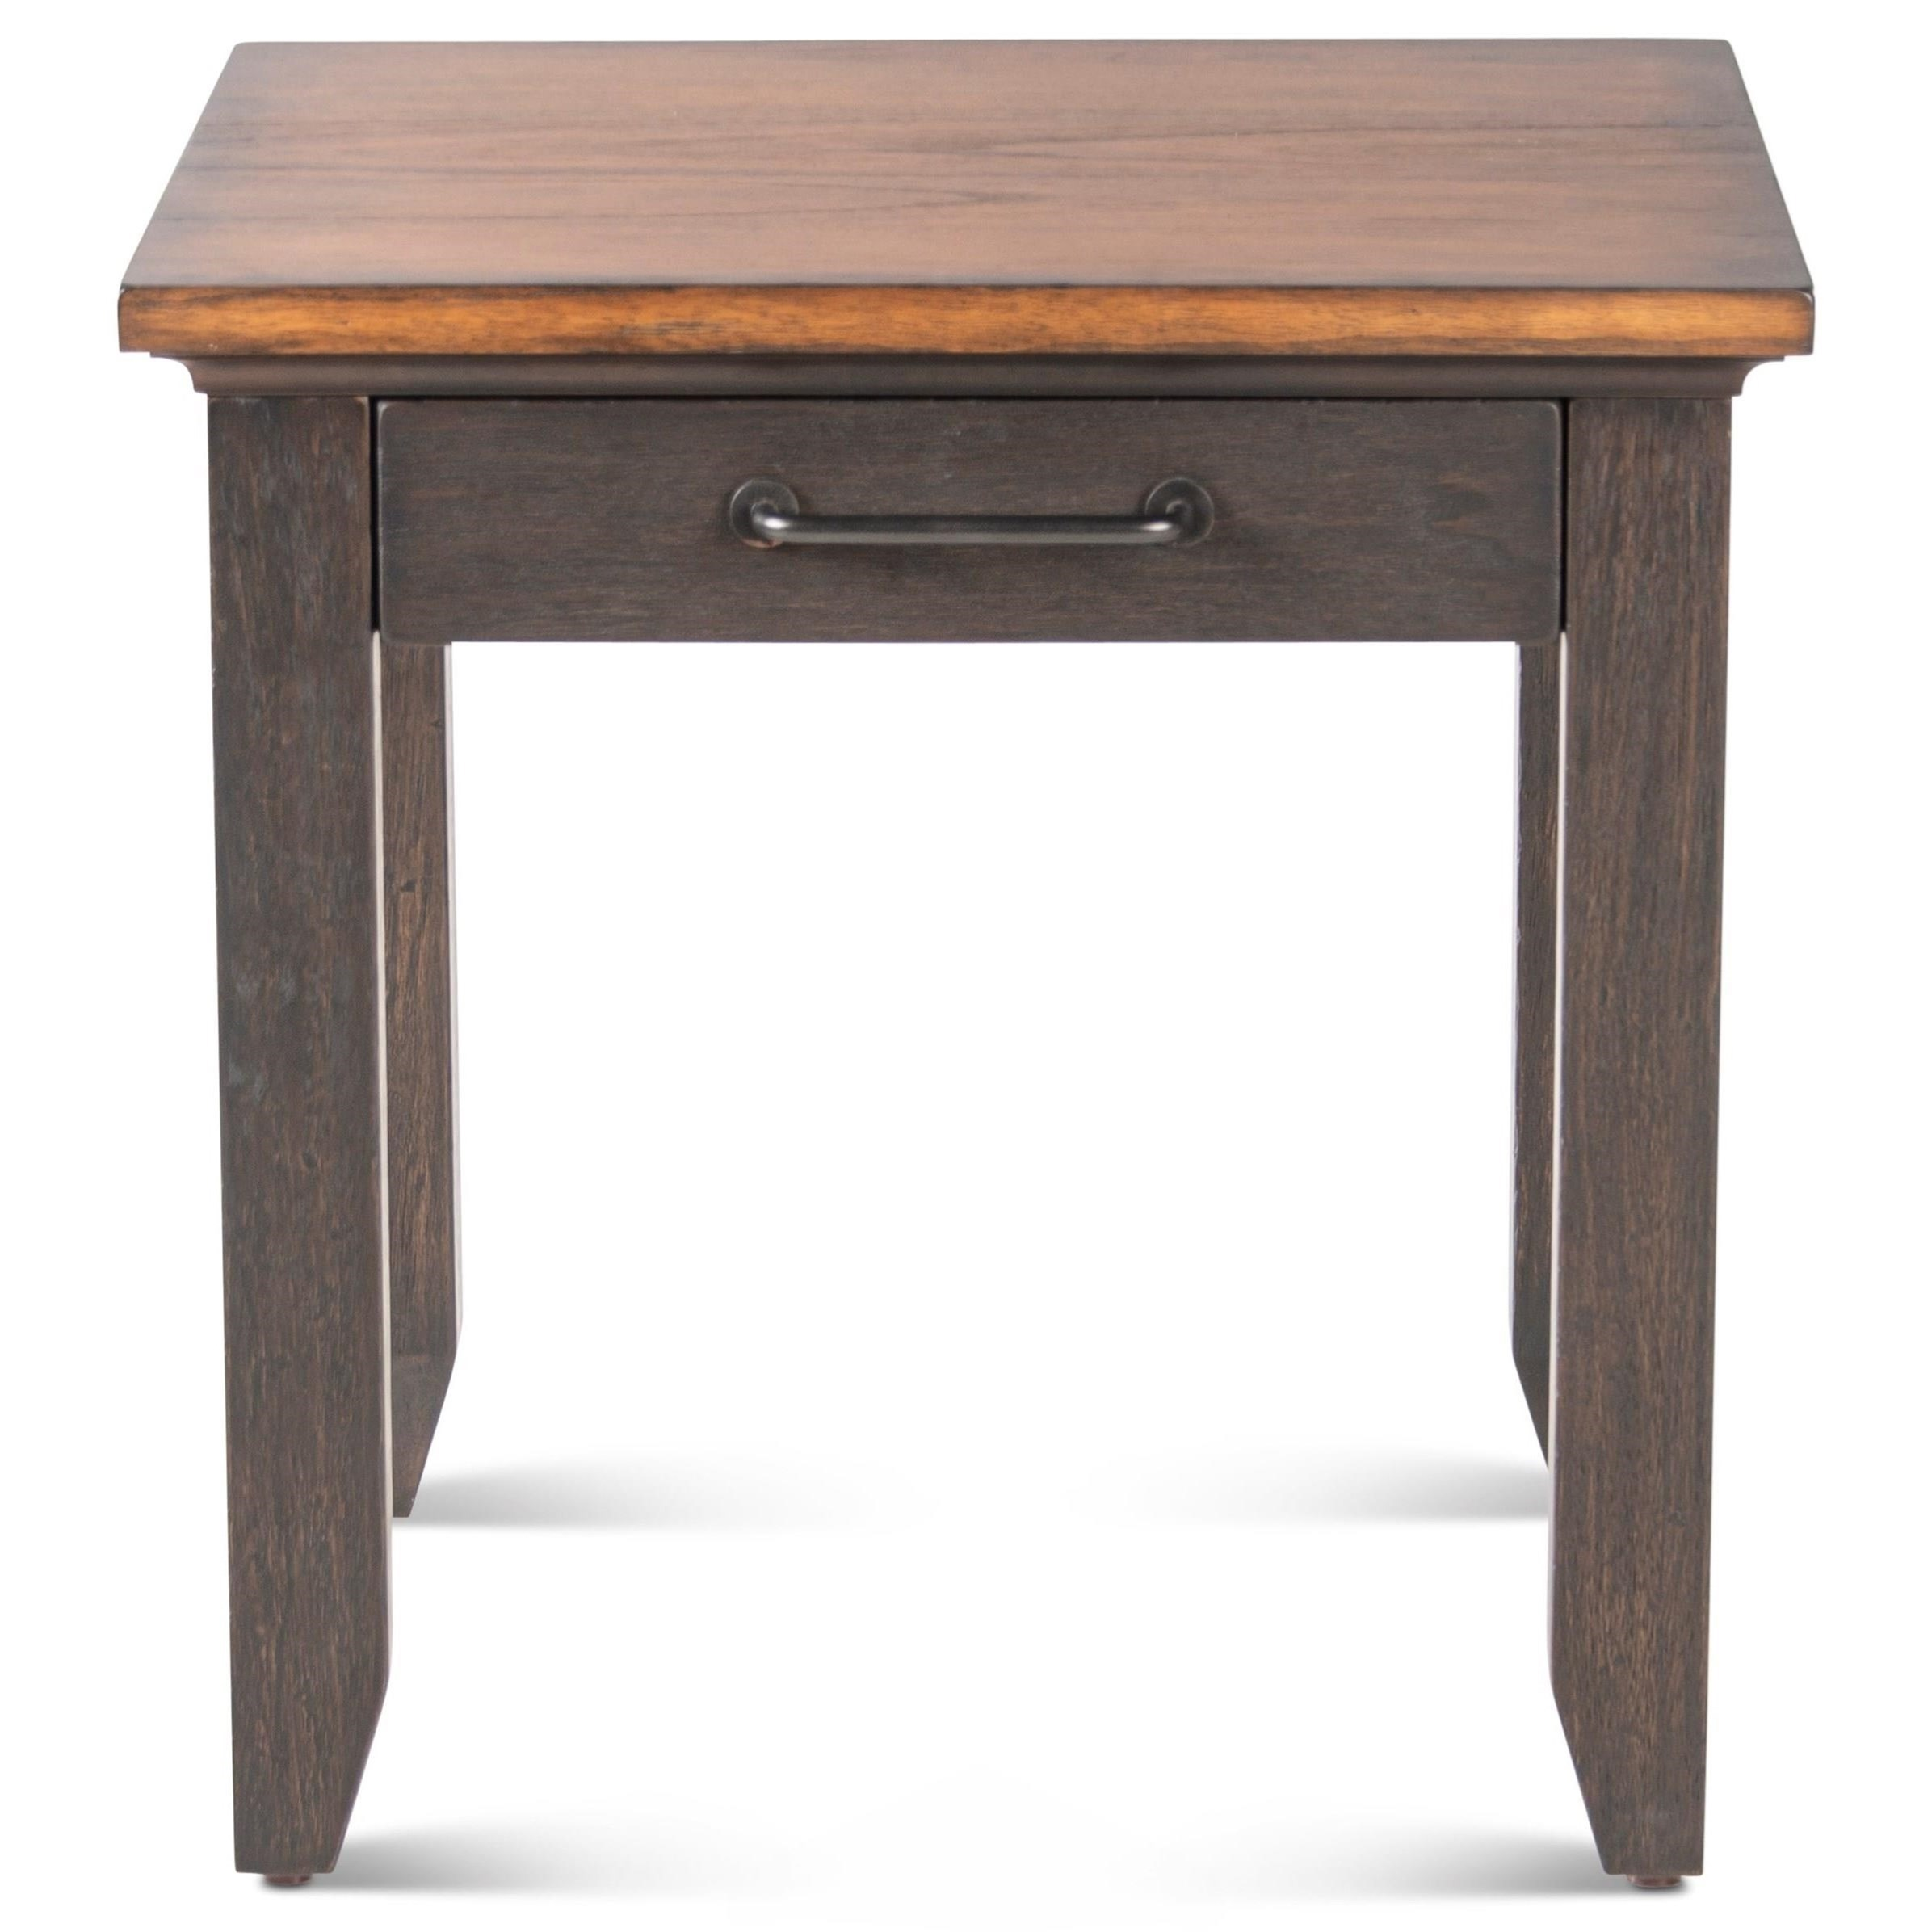 Bear Creek End Table by Steve Silver at Northeast Factory Direct